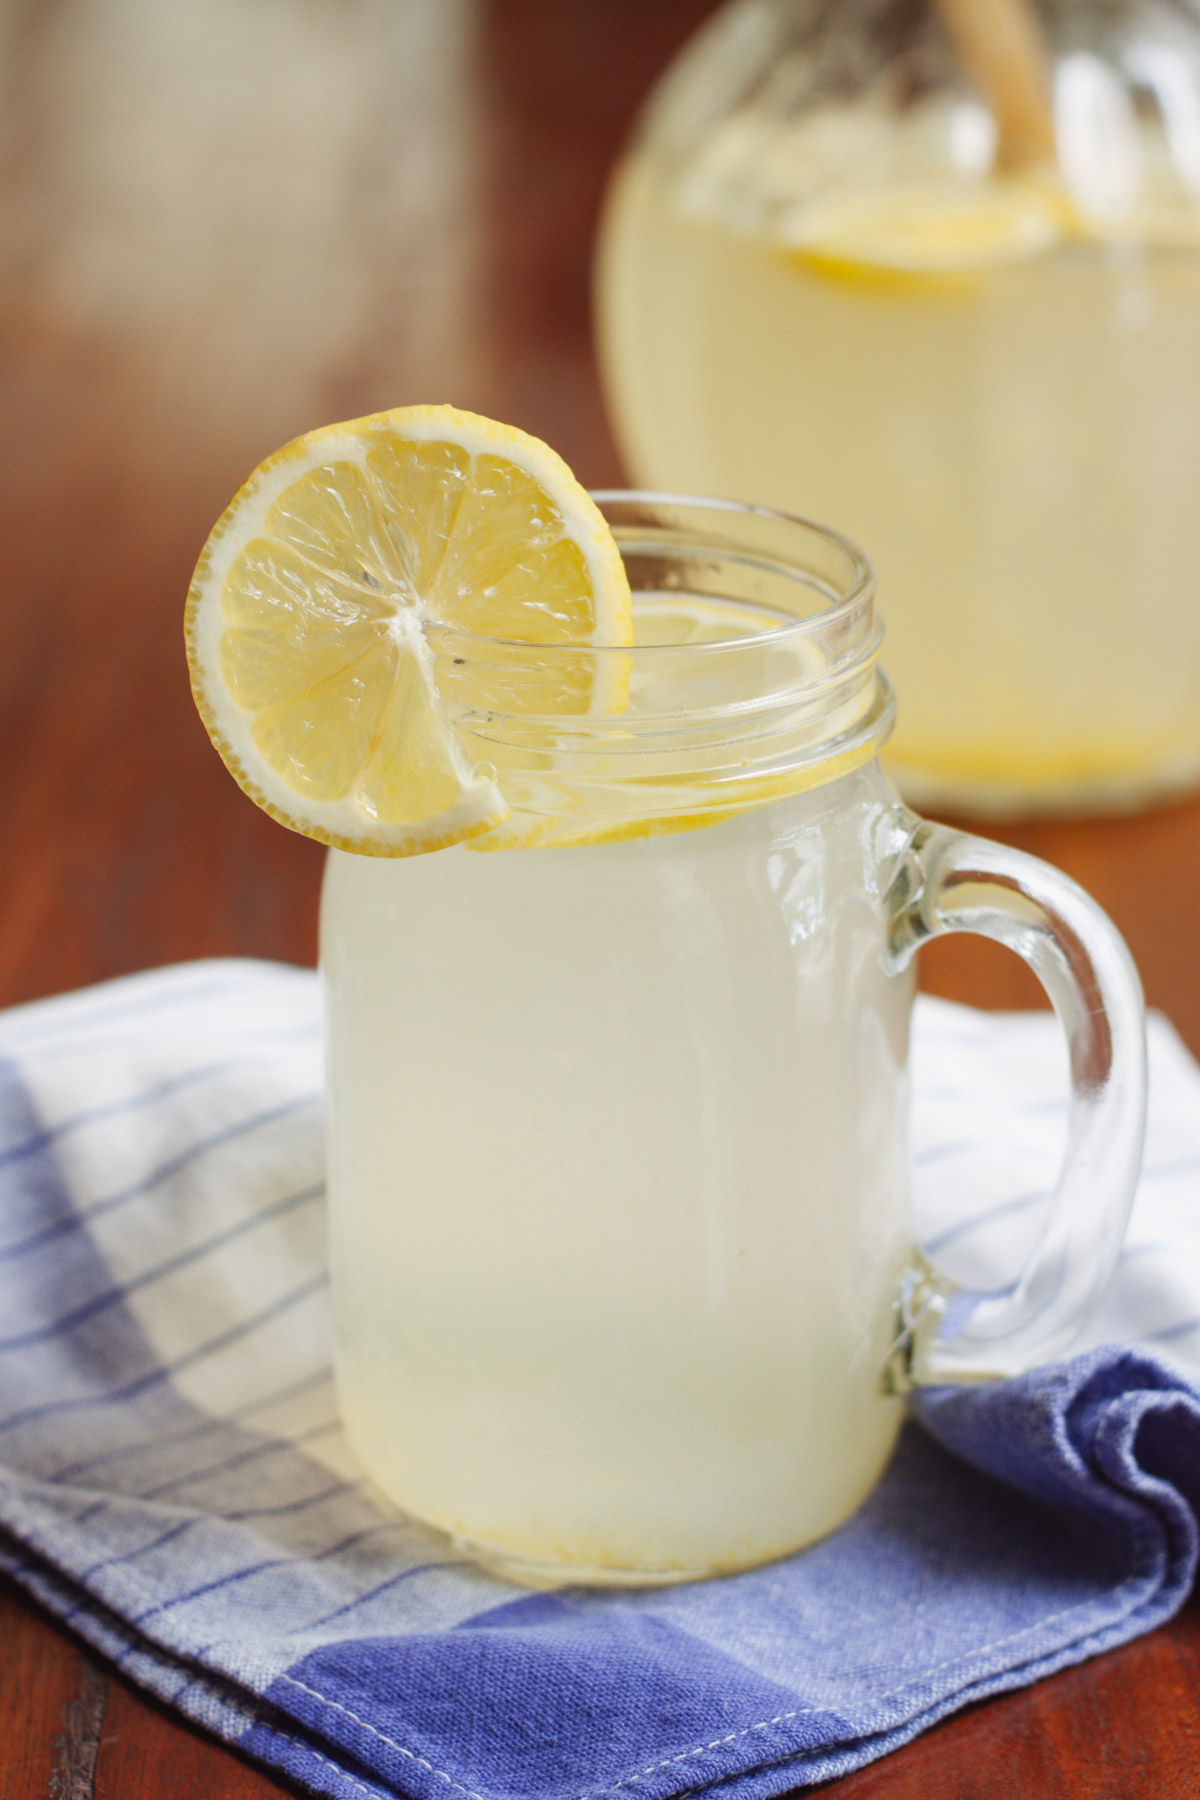 Glass mug with lemonade and lemon on top on a blue and white towel with pitcher of lemonade in background.